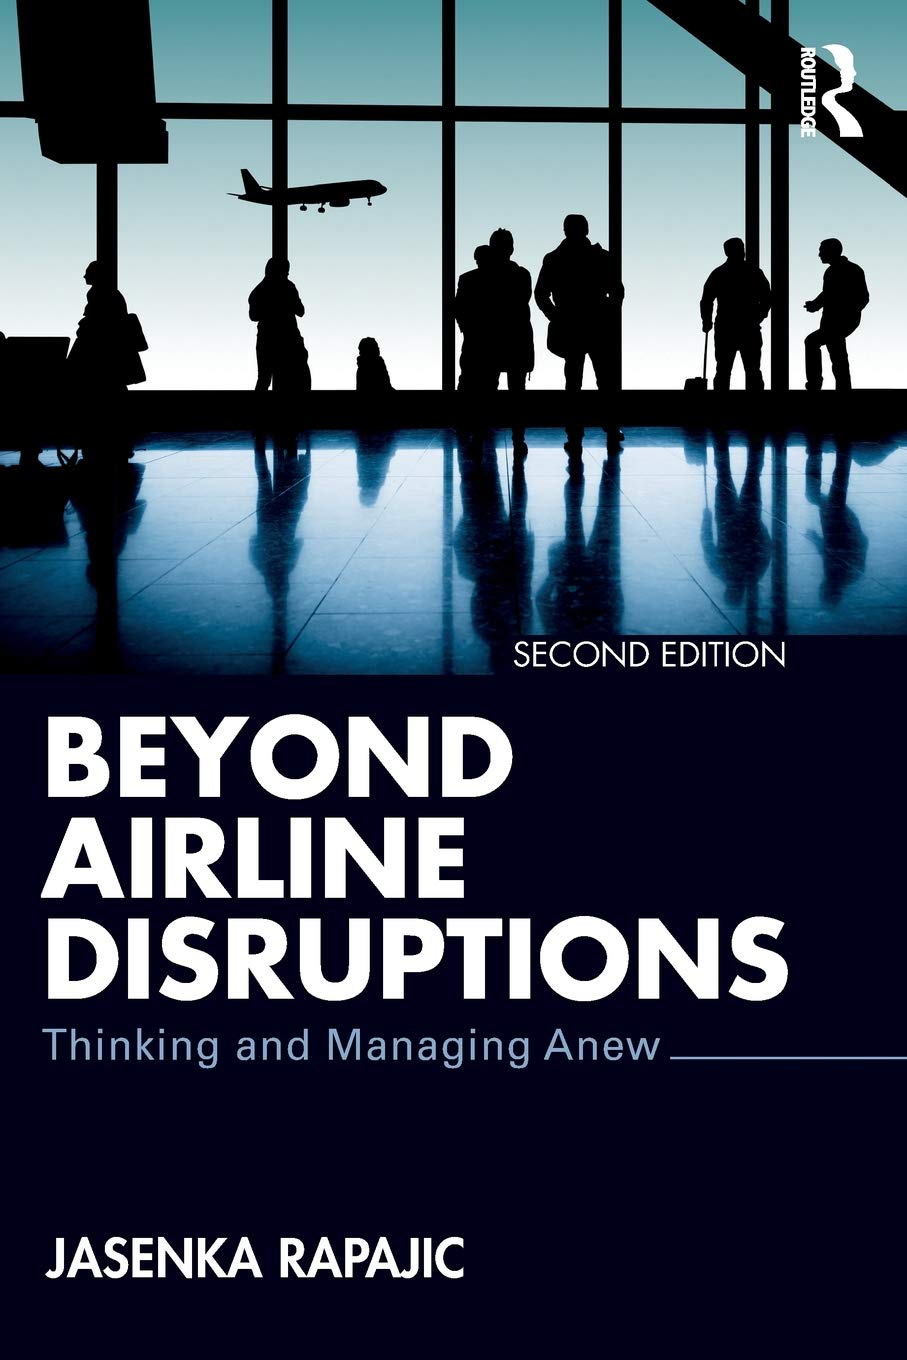 Beyond Airline Disruptions